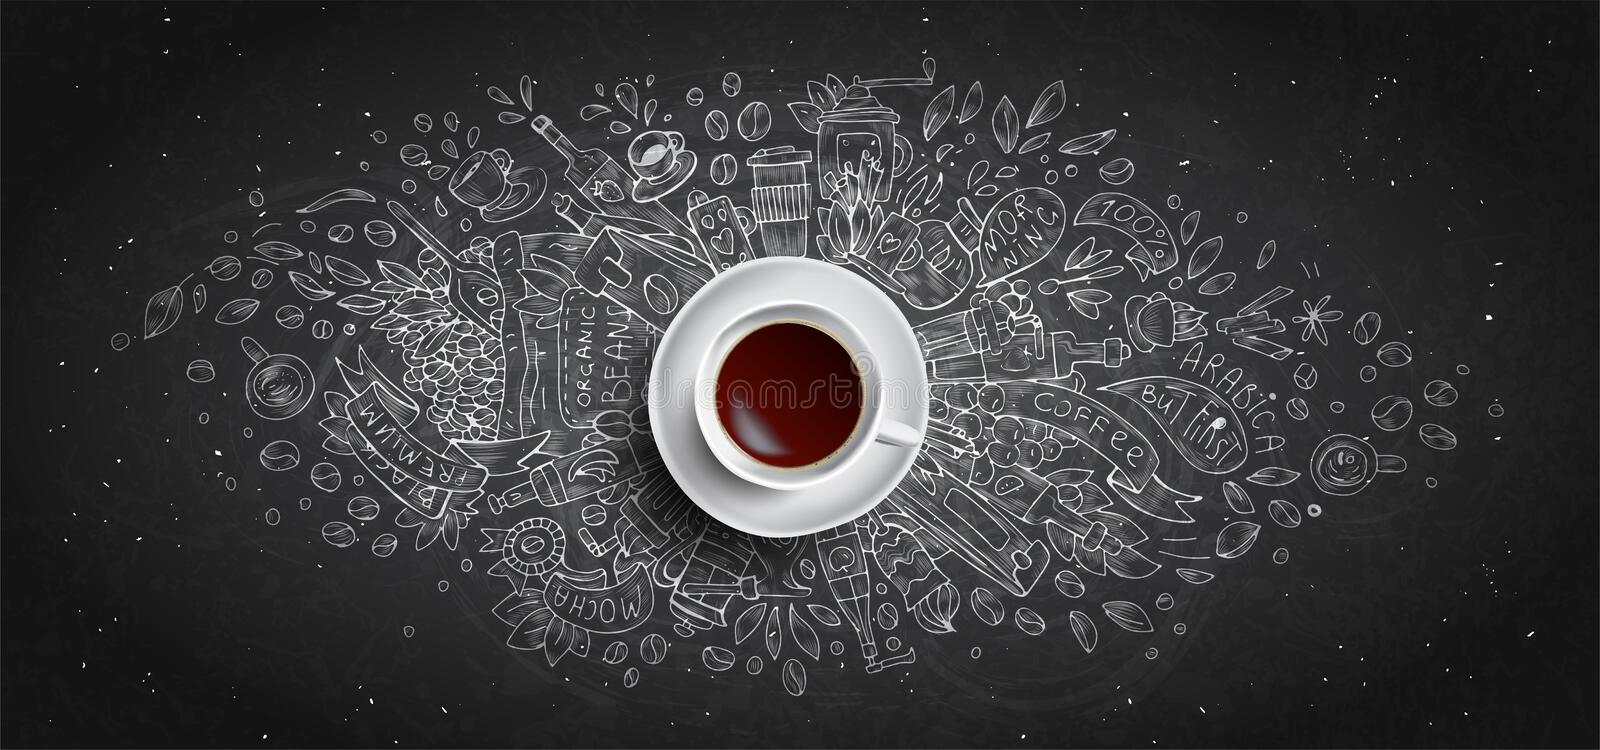 Coffee chalk illustrated concept on black board background - white coffee cup, top view with chalk doodle illustration stock illustration